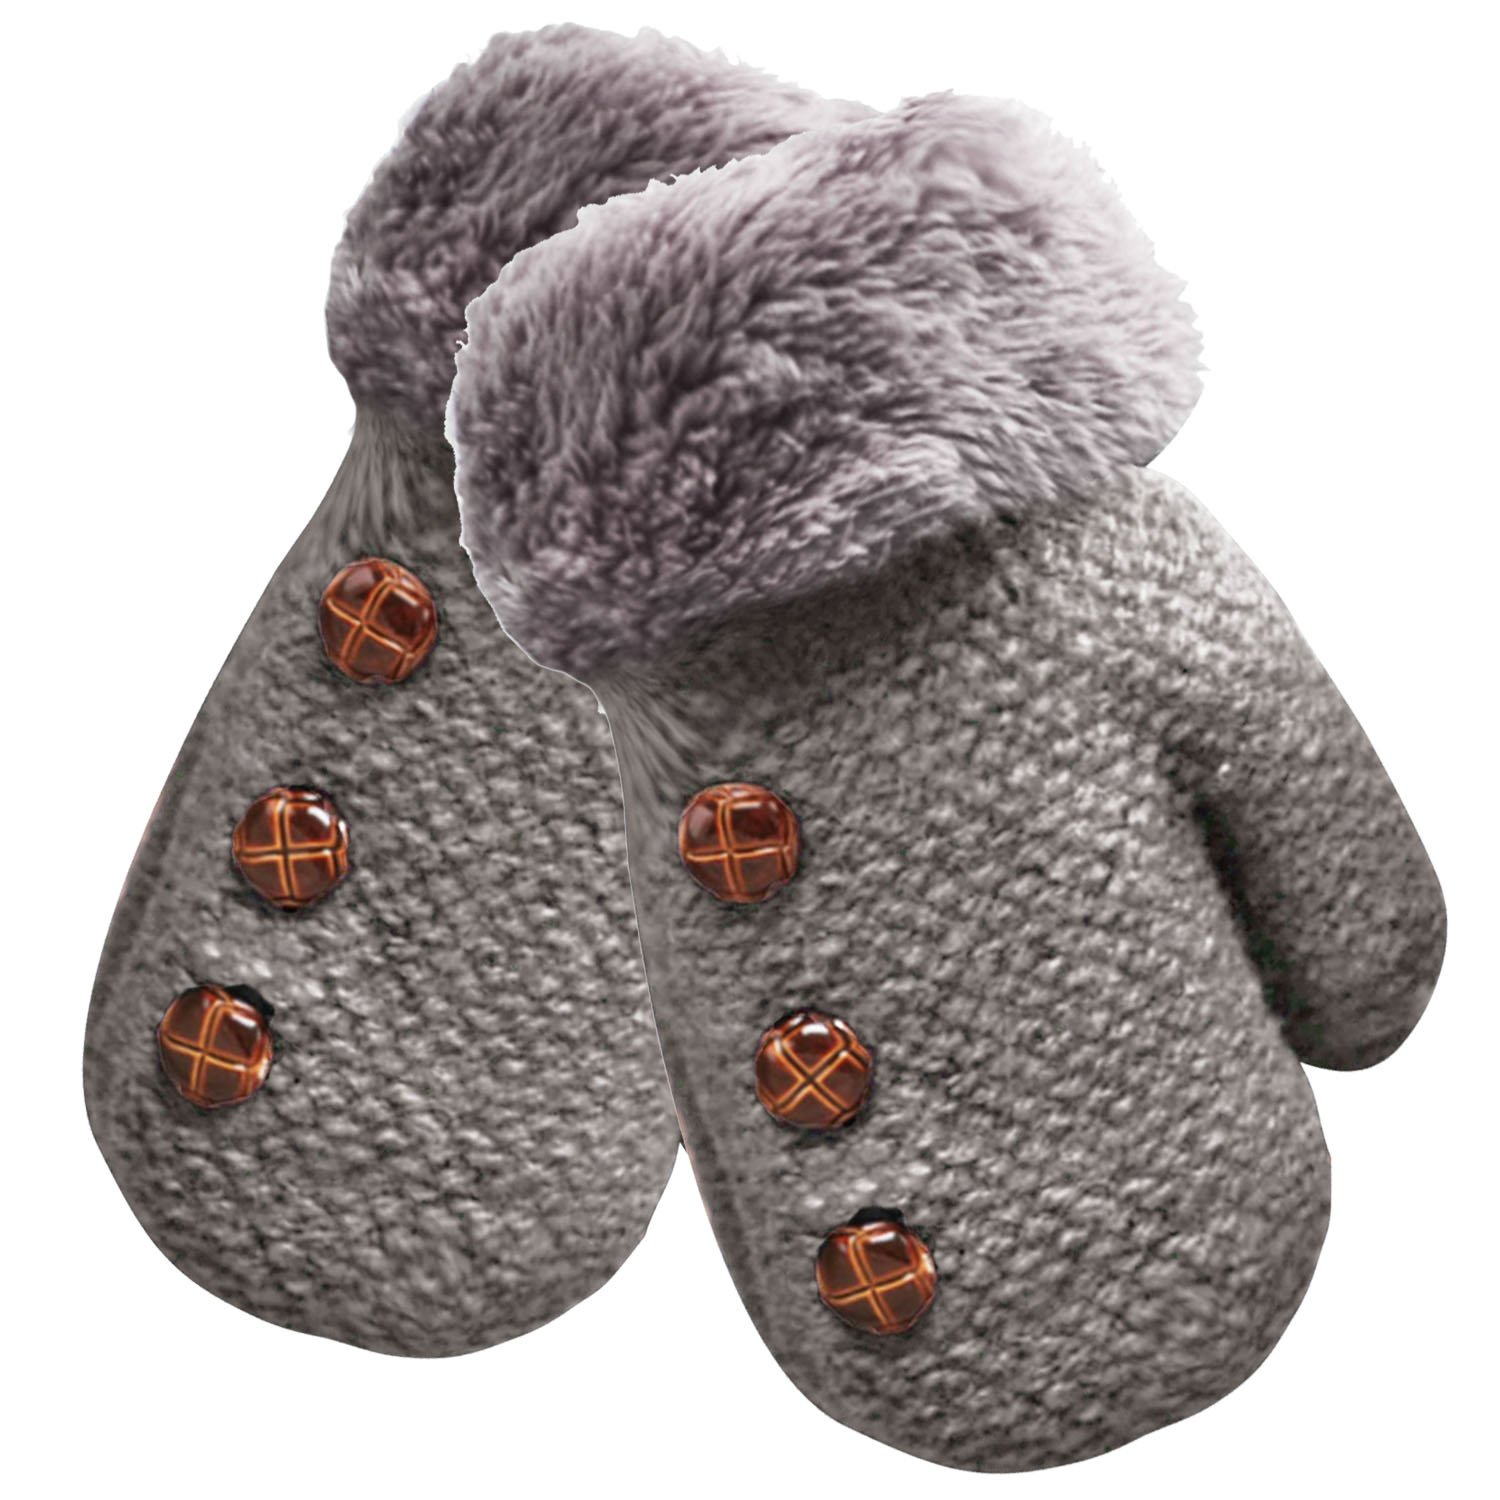 Beetest-EU-Cute Winter Warm Kid Baby Children Boy Girl Glove Grey